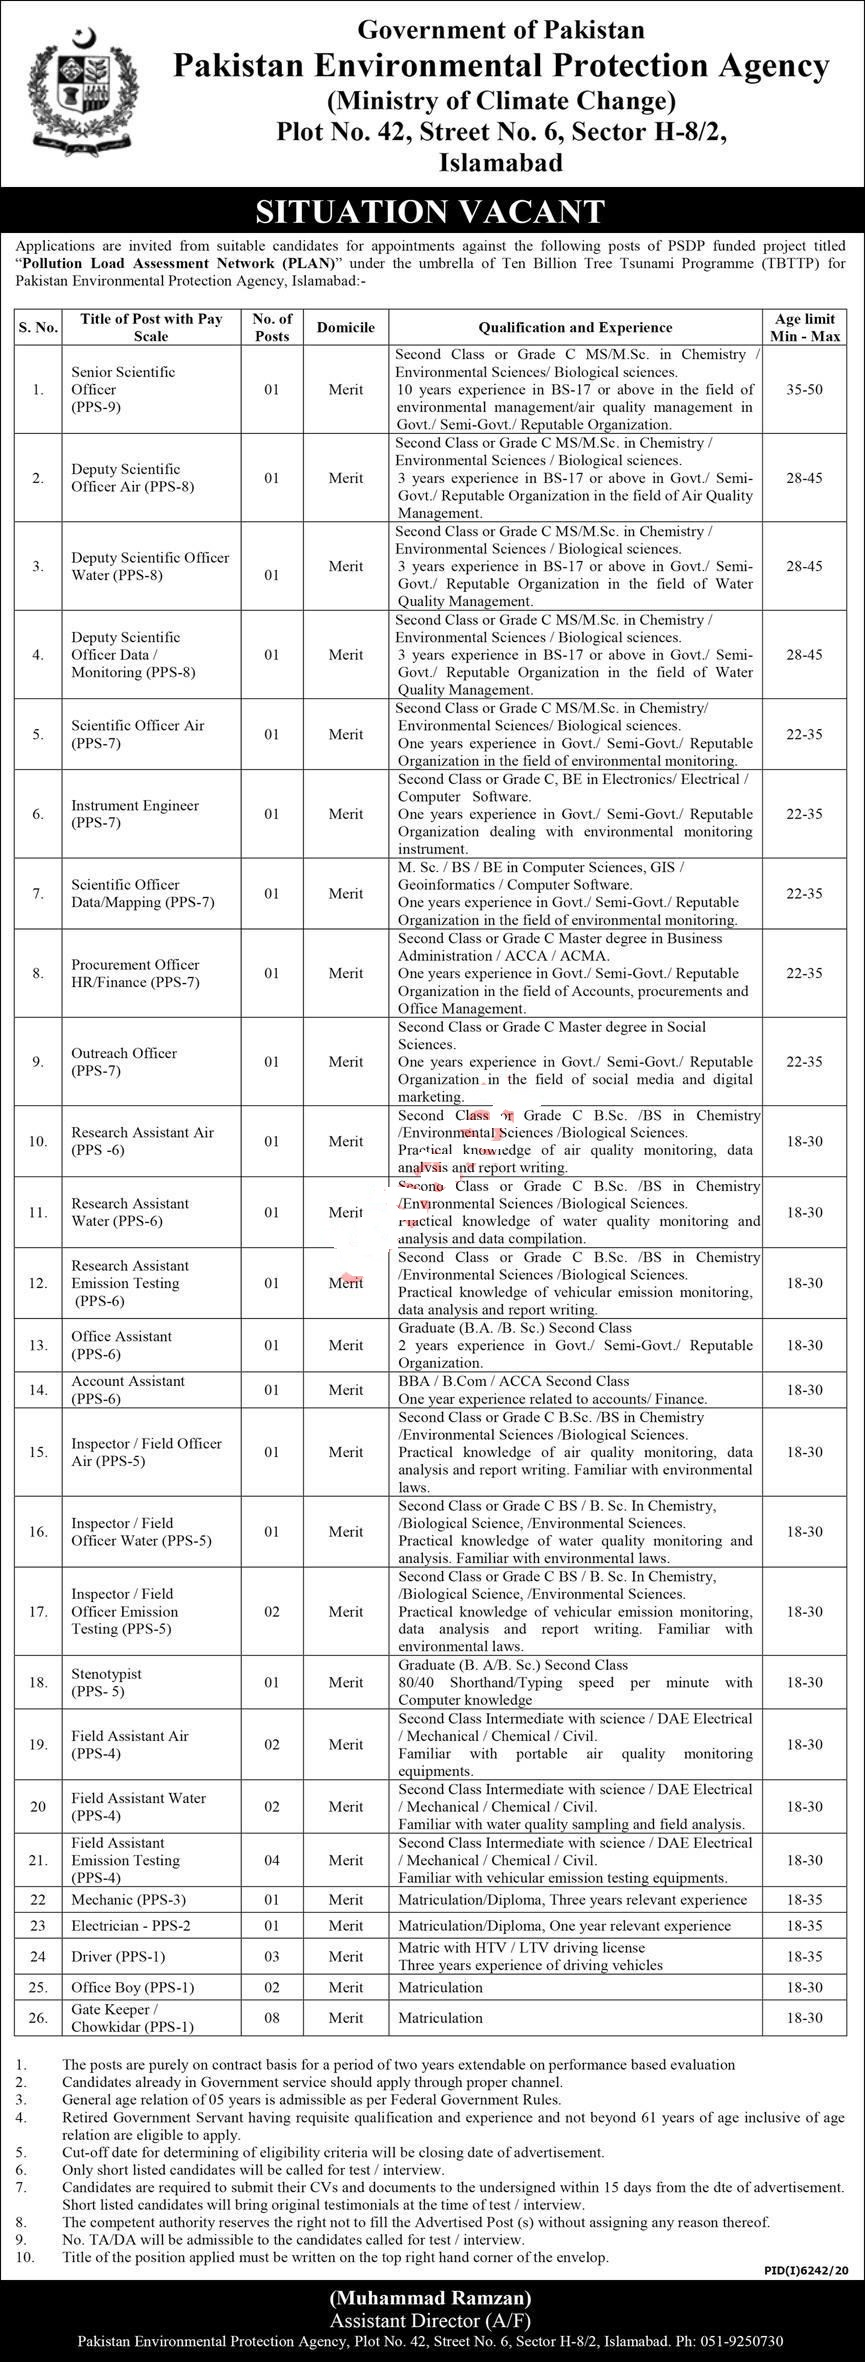 Pakistan Environmental Protection Agency PEPA Jobs 2021 for Senior Scientific Officer, Deputy Scientific Officer Air, Deputy Scientific Officer Water, Deputy Scientific Officer Monitoring, Office Assistant and many more